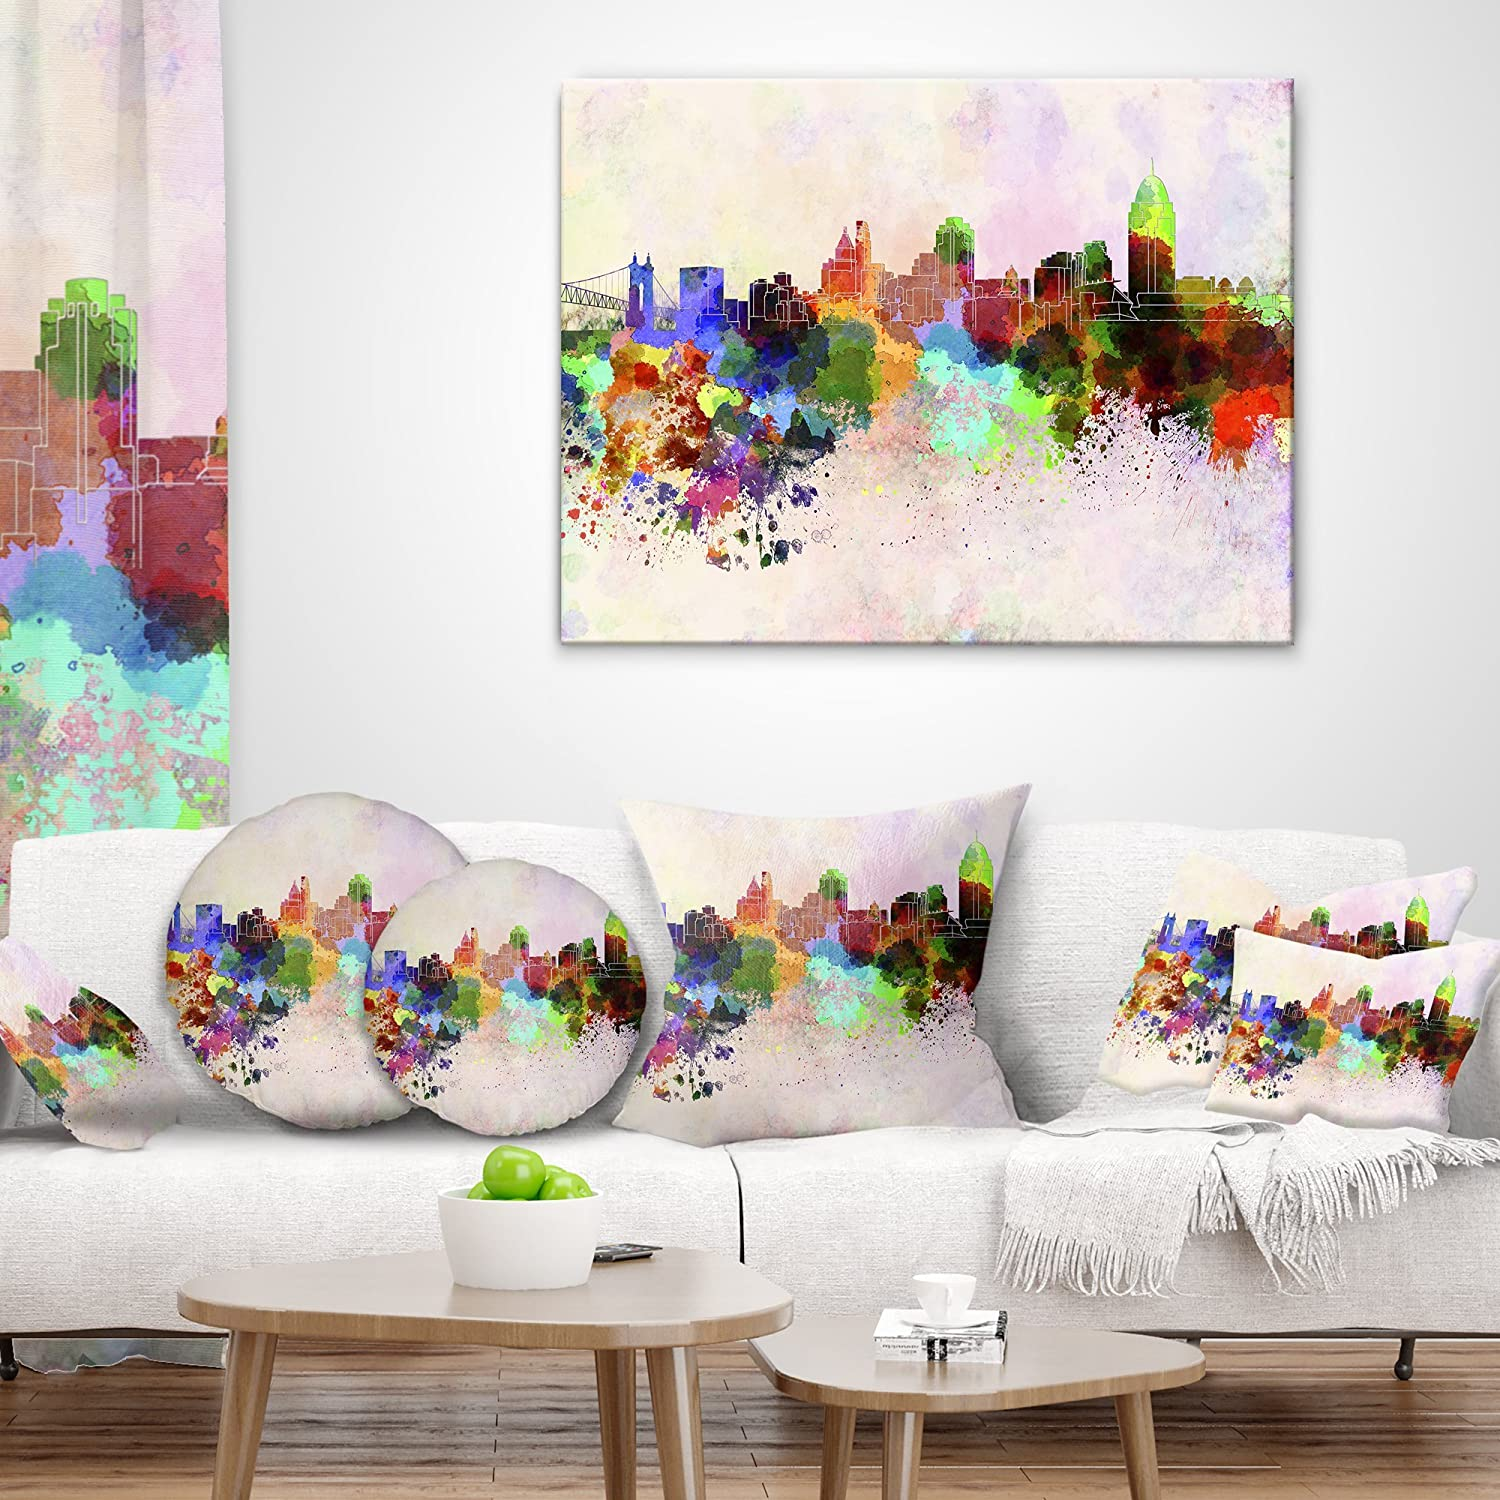 X 18 In Designart Cu6595 18 18 Cincinnati Skyline Cityscape Cushion Cover For Living Room In Sofa Throw Pillow 18 In Home Kitchen Decorative Pillows Inserts Covers